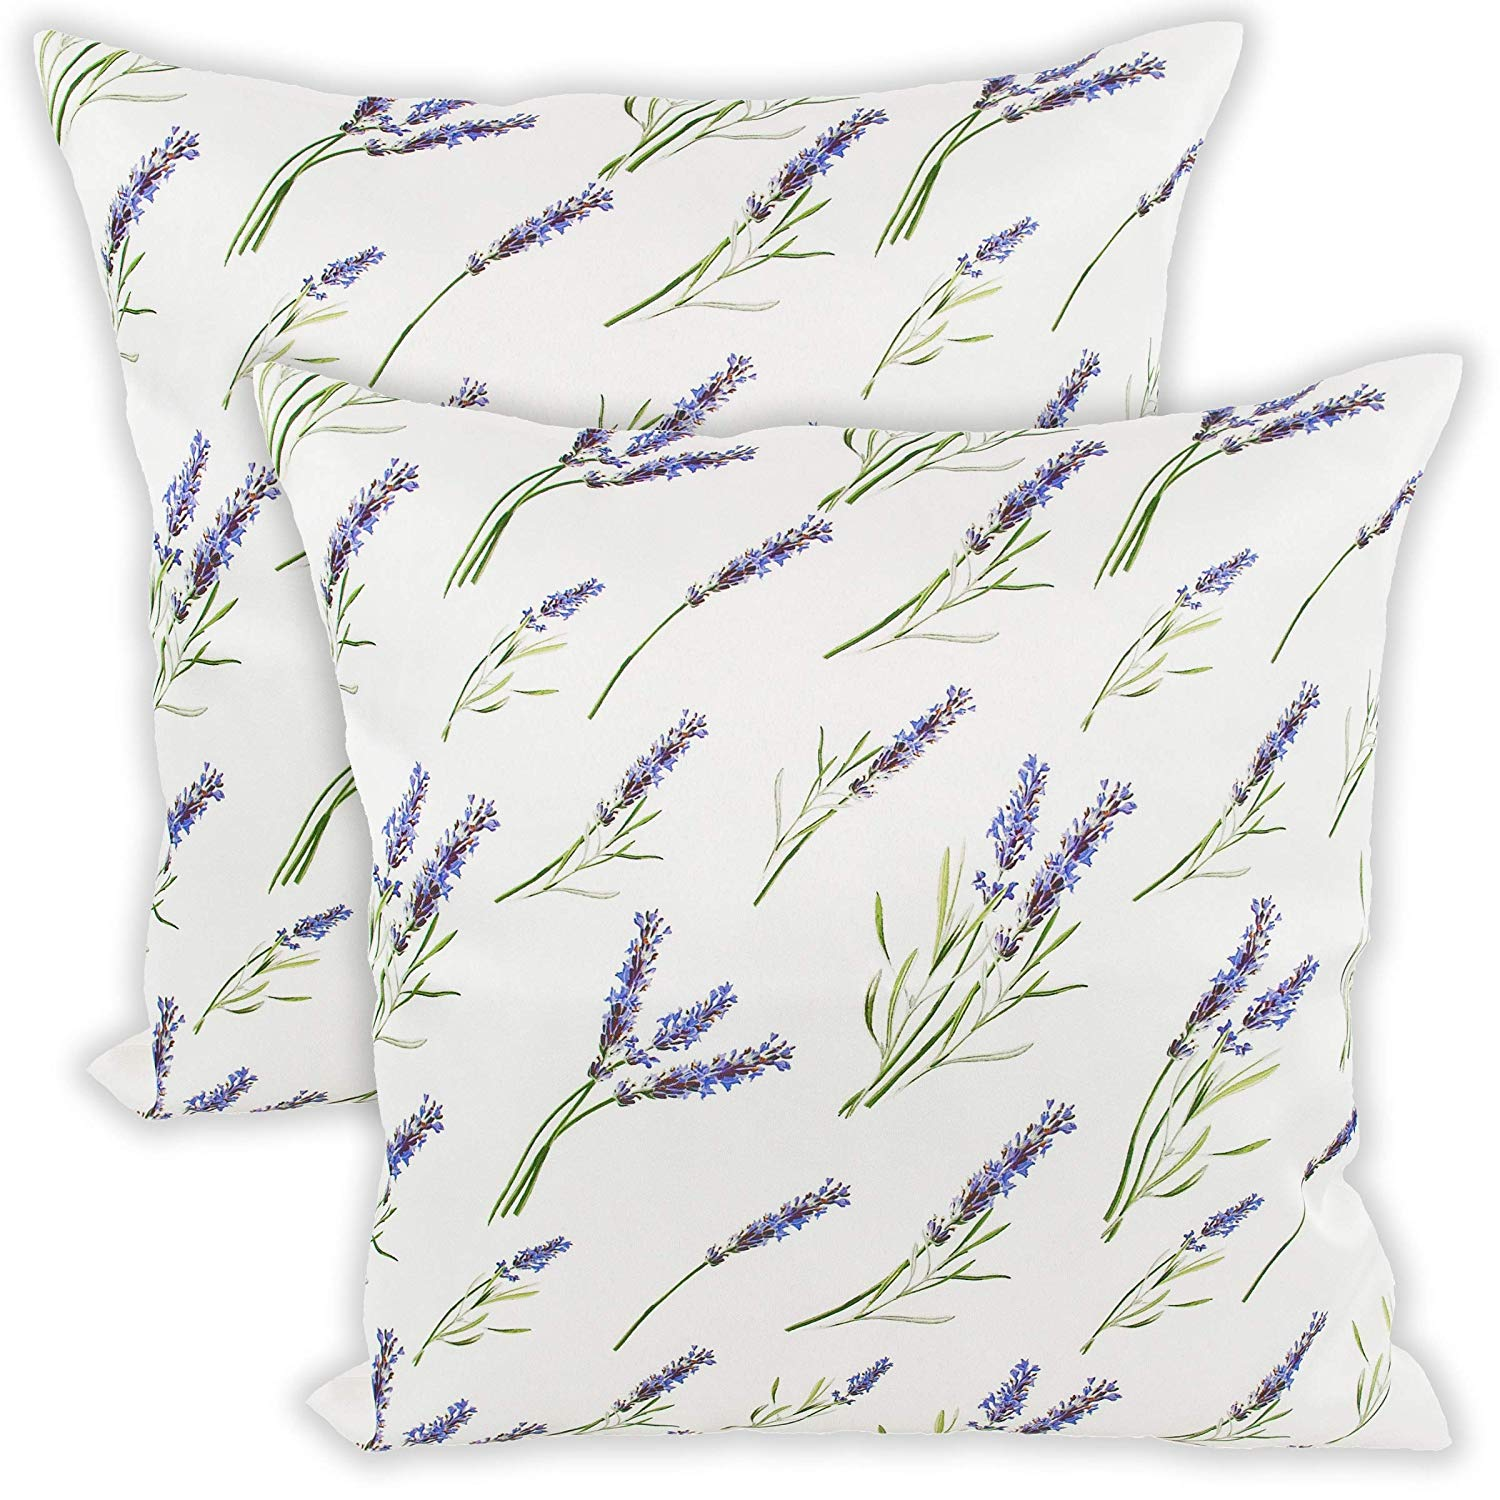 Throw Pillow Case Lavender Flowers On Ivory Cushion Covered Zipper